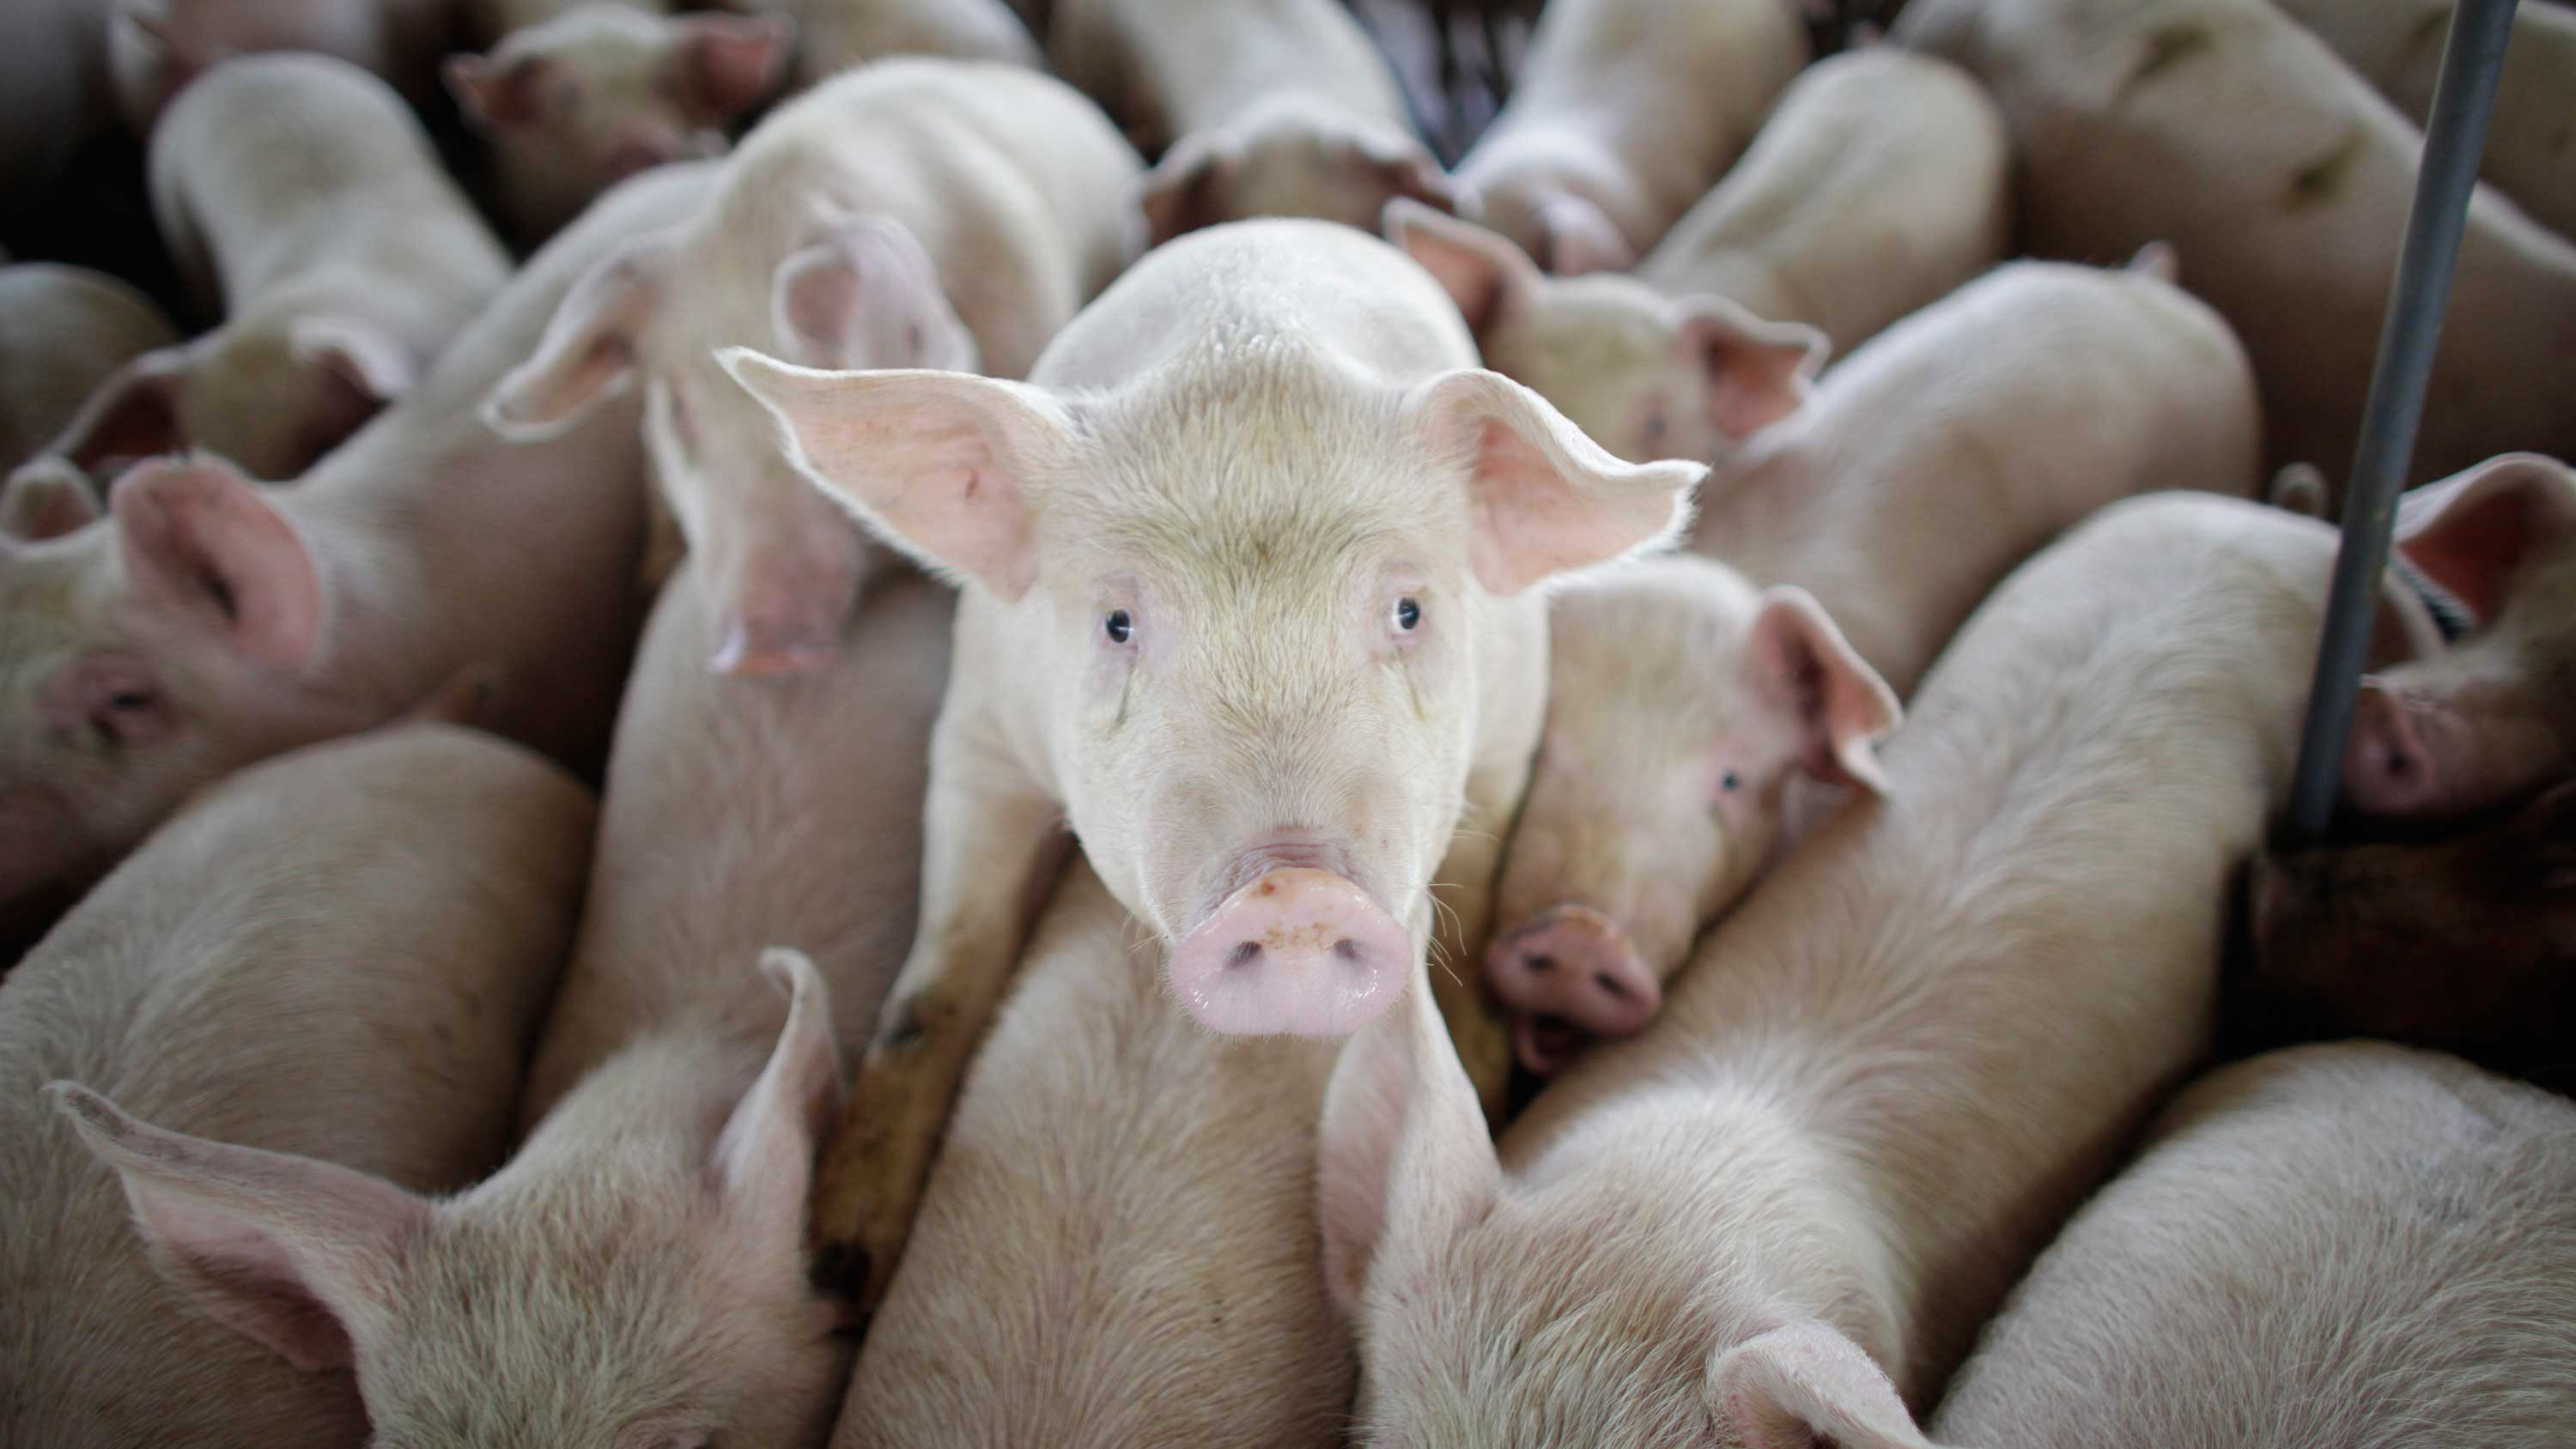 Pigs are seen on a farm run by Granjas Carroll de Mexico on the outskirts of Xicaltepec in Mexico's Veracruz state, Monday, April 27, 2009.